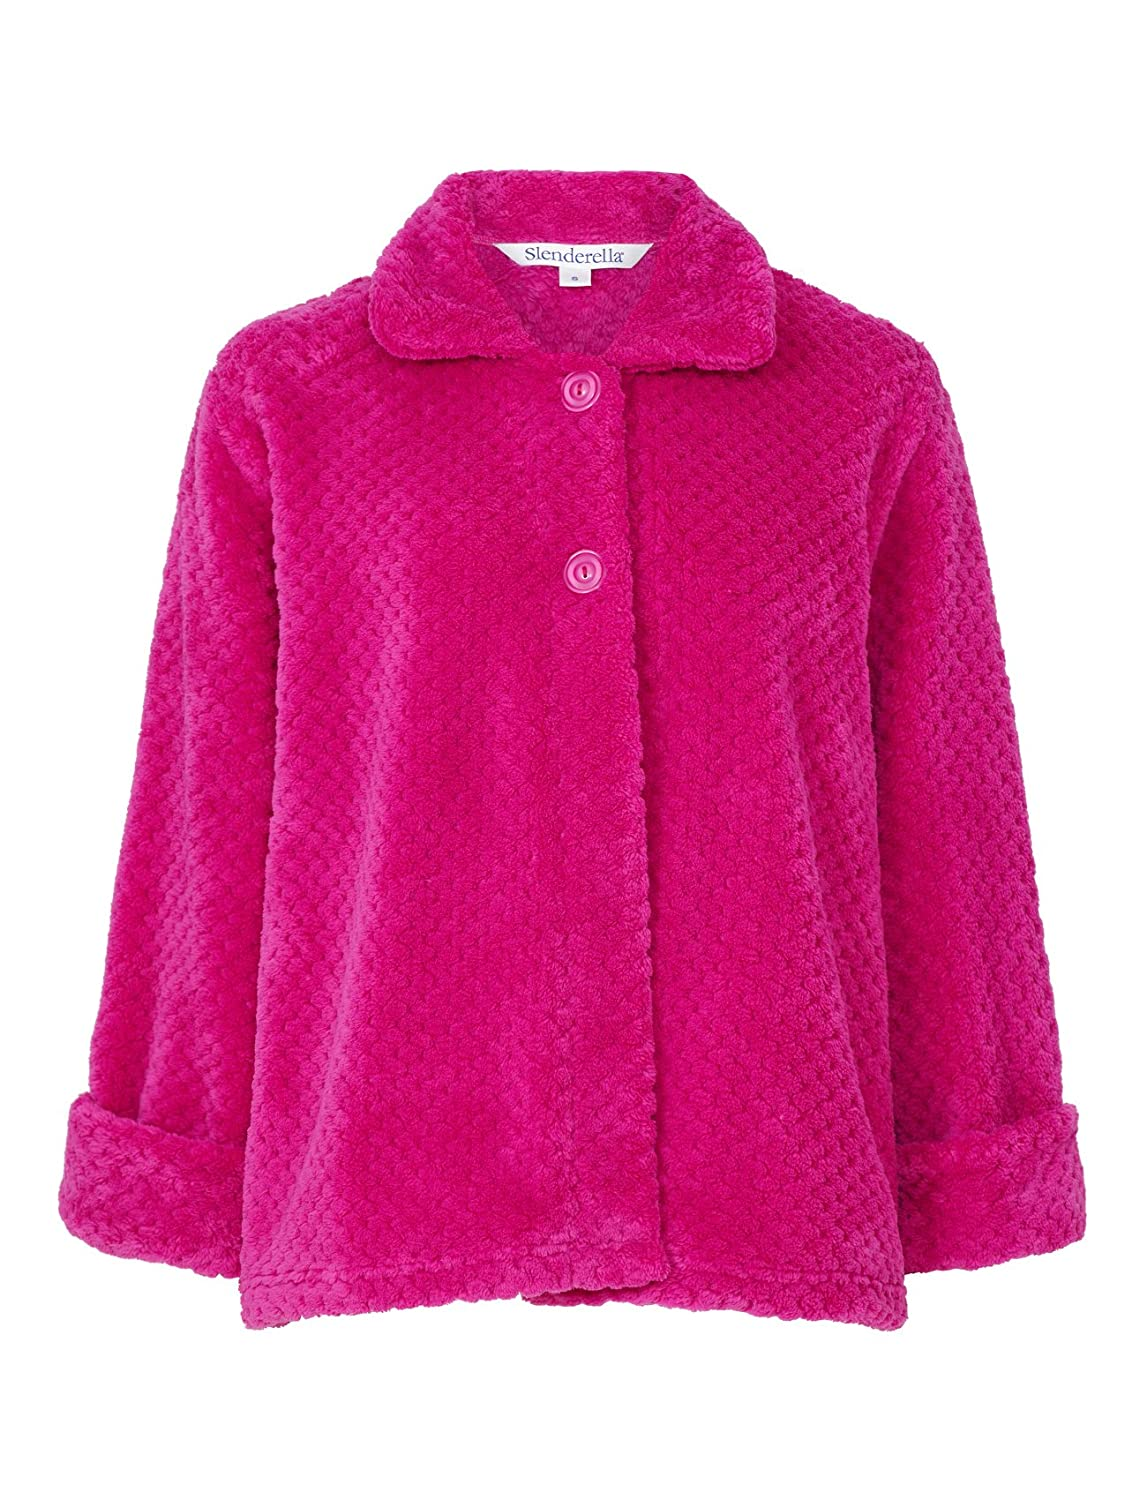 Small - XXL Slenderella Ladies Floral Jacquard Bed Jacket Button Up Super Soft Fleece Housecoat